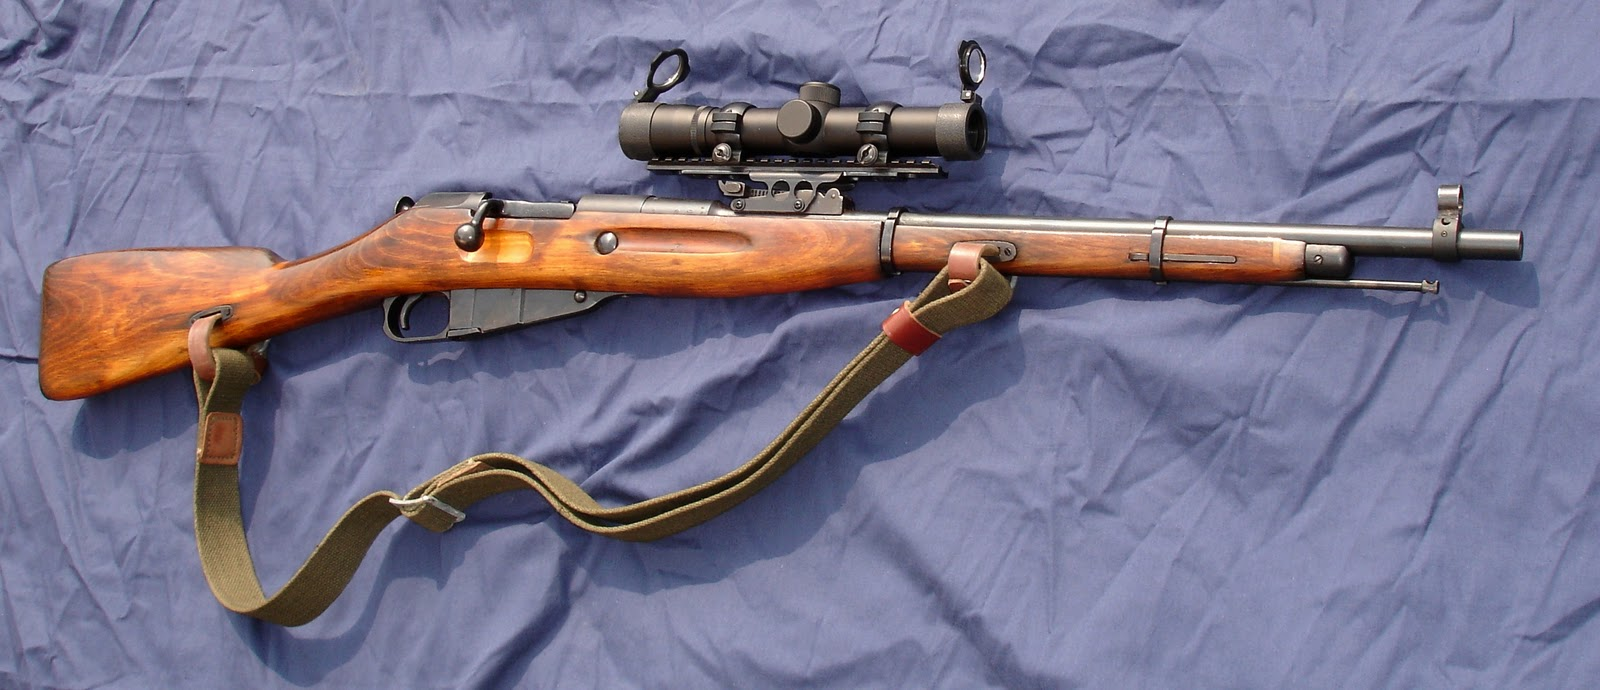 My Mosin Nagant